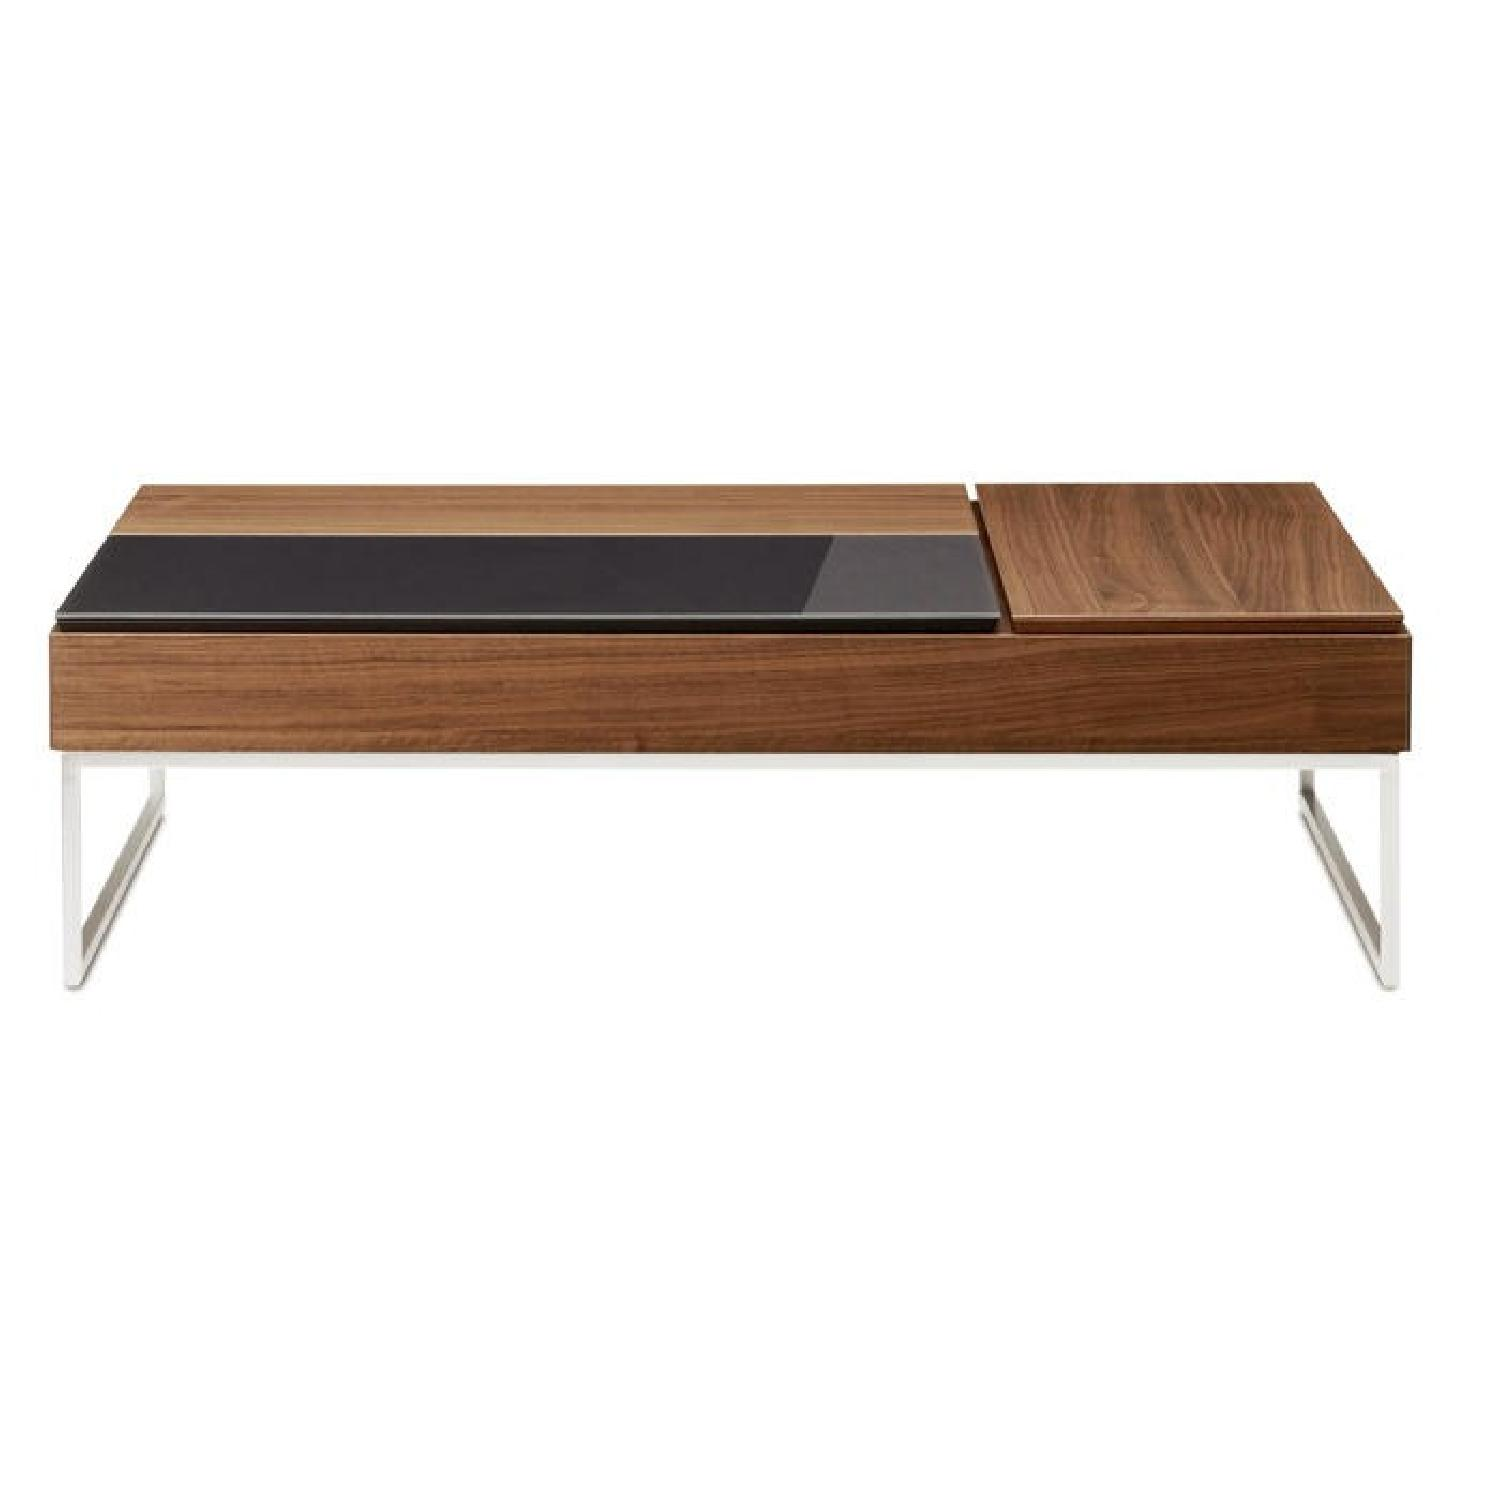 BoConcept Chiva Modern Pop Up Hidden Storage Coffee Table ...  sc 1 st  AptDeco & BoConcept Chiva Modern Pop Up Hidden Storage Coffee - AptDeco